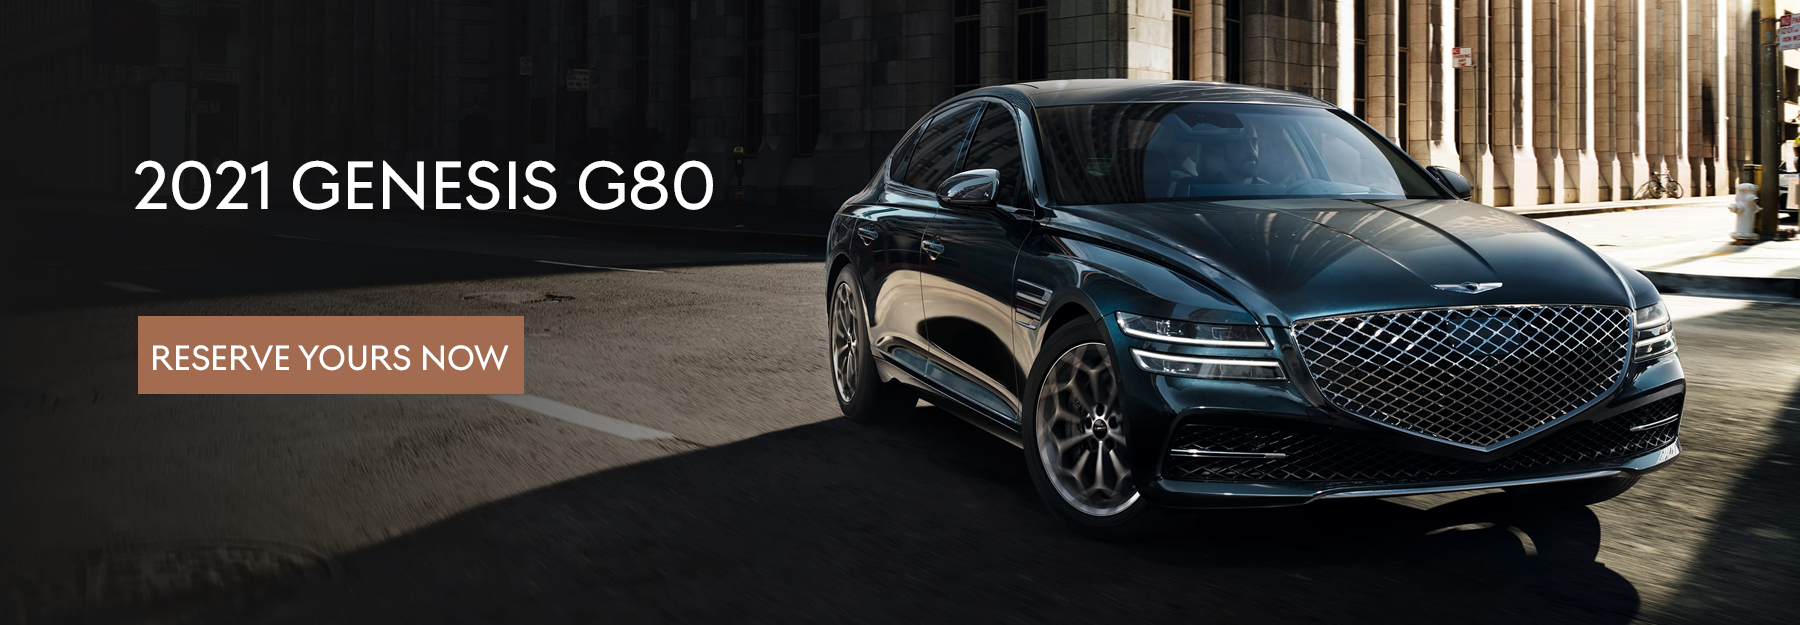 2021 G80 Reserve Now